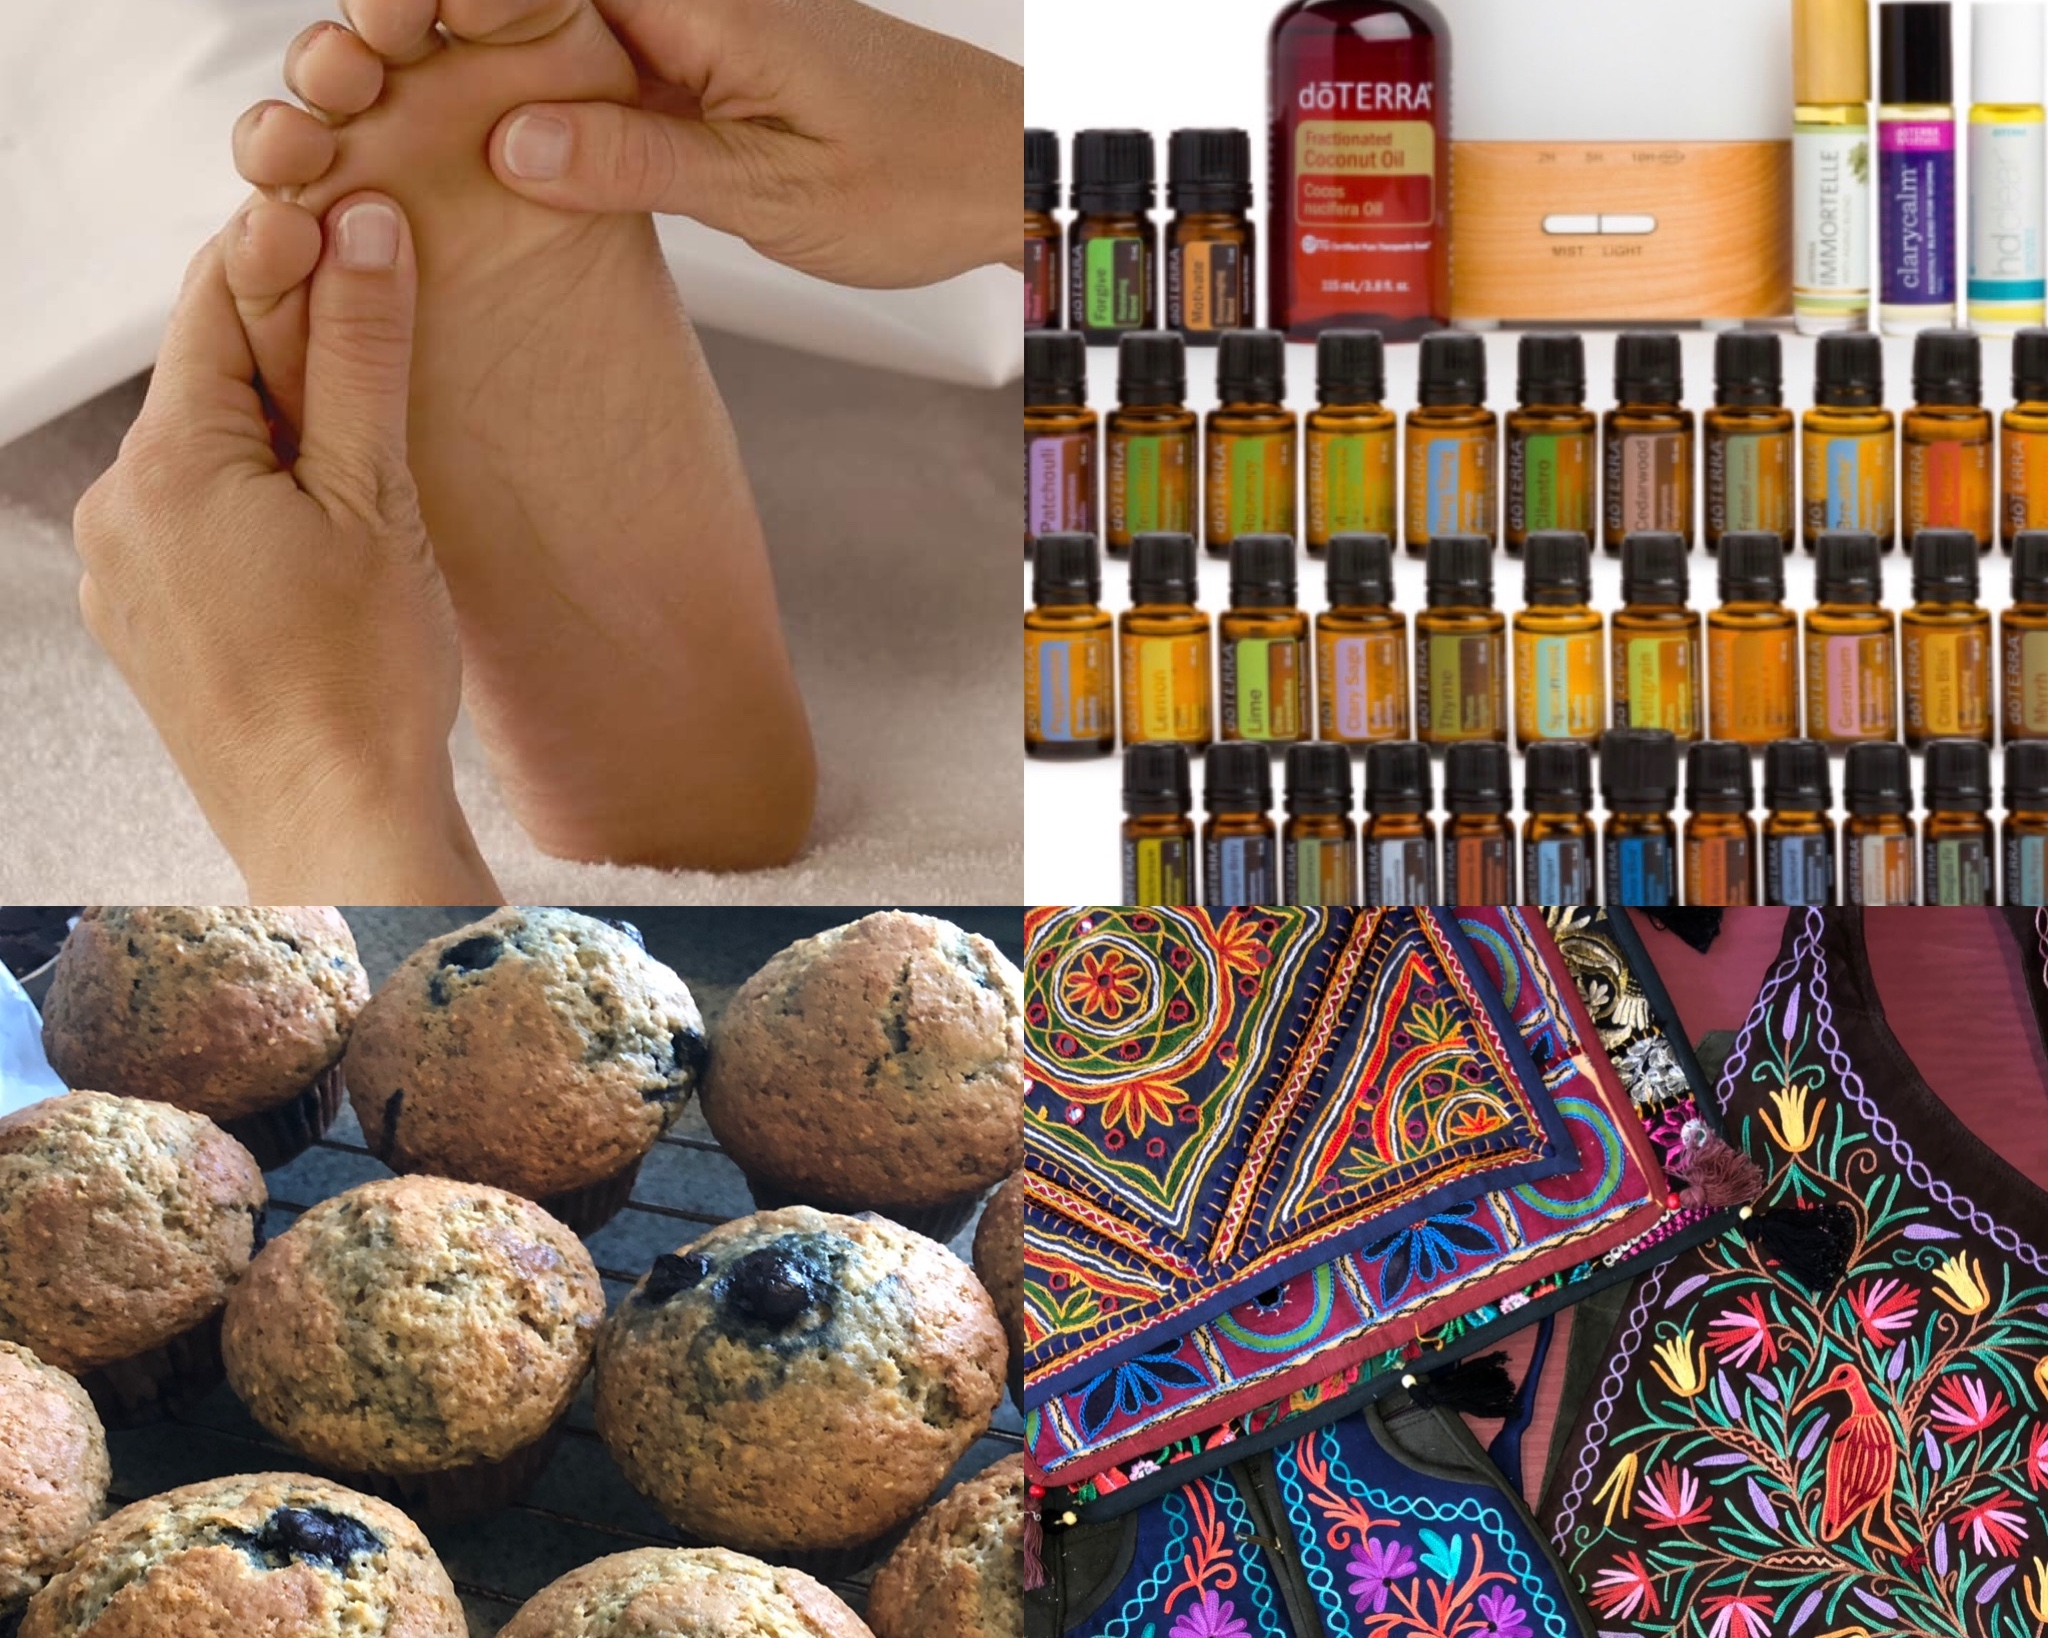 Awaken Wellness Fair 2019:June 23rd - FREE event to awaken health and wellness in our community. DoTerra Essential Oils, Flourish Restorative Therapies, unique gifts from India, Tiffany's foot reflexology, and more! Plenty of free parking. 2-6pm